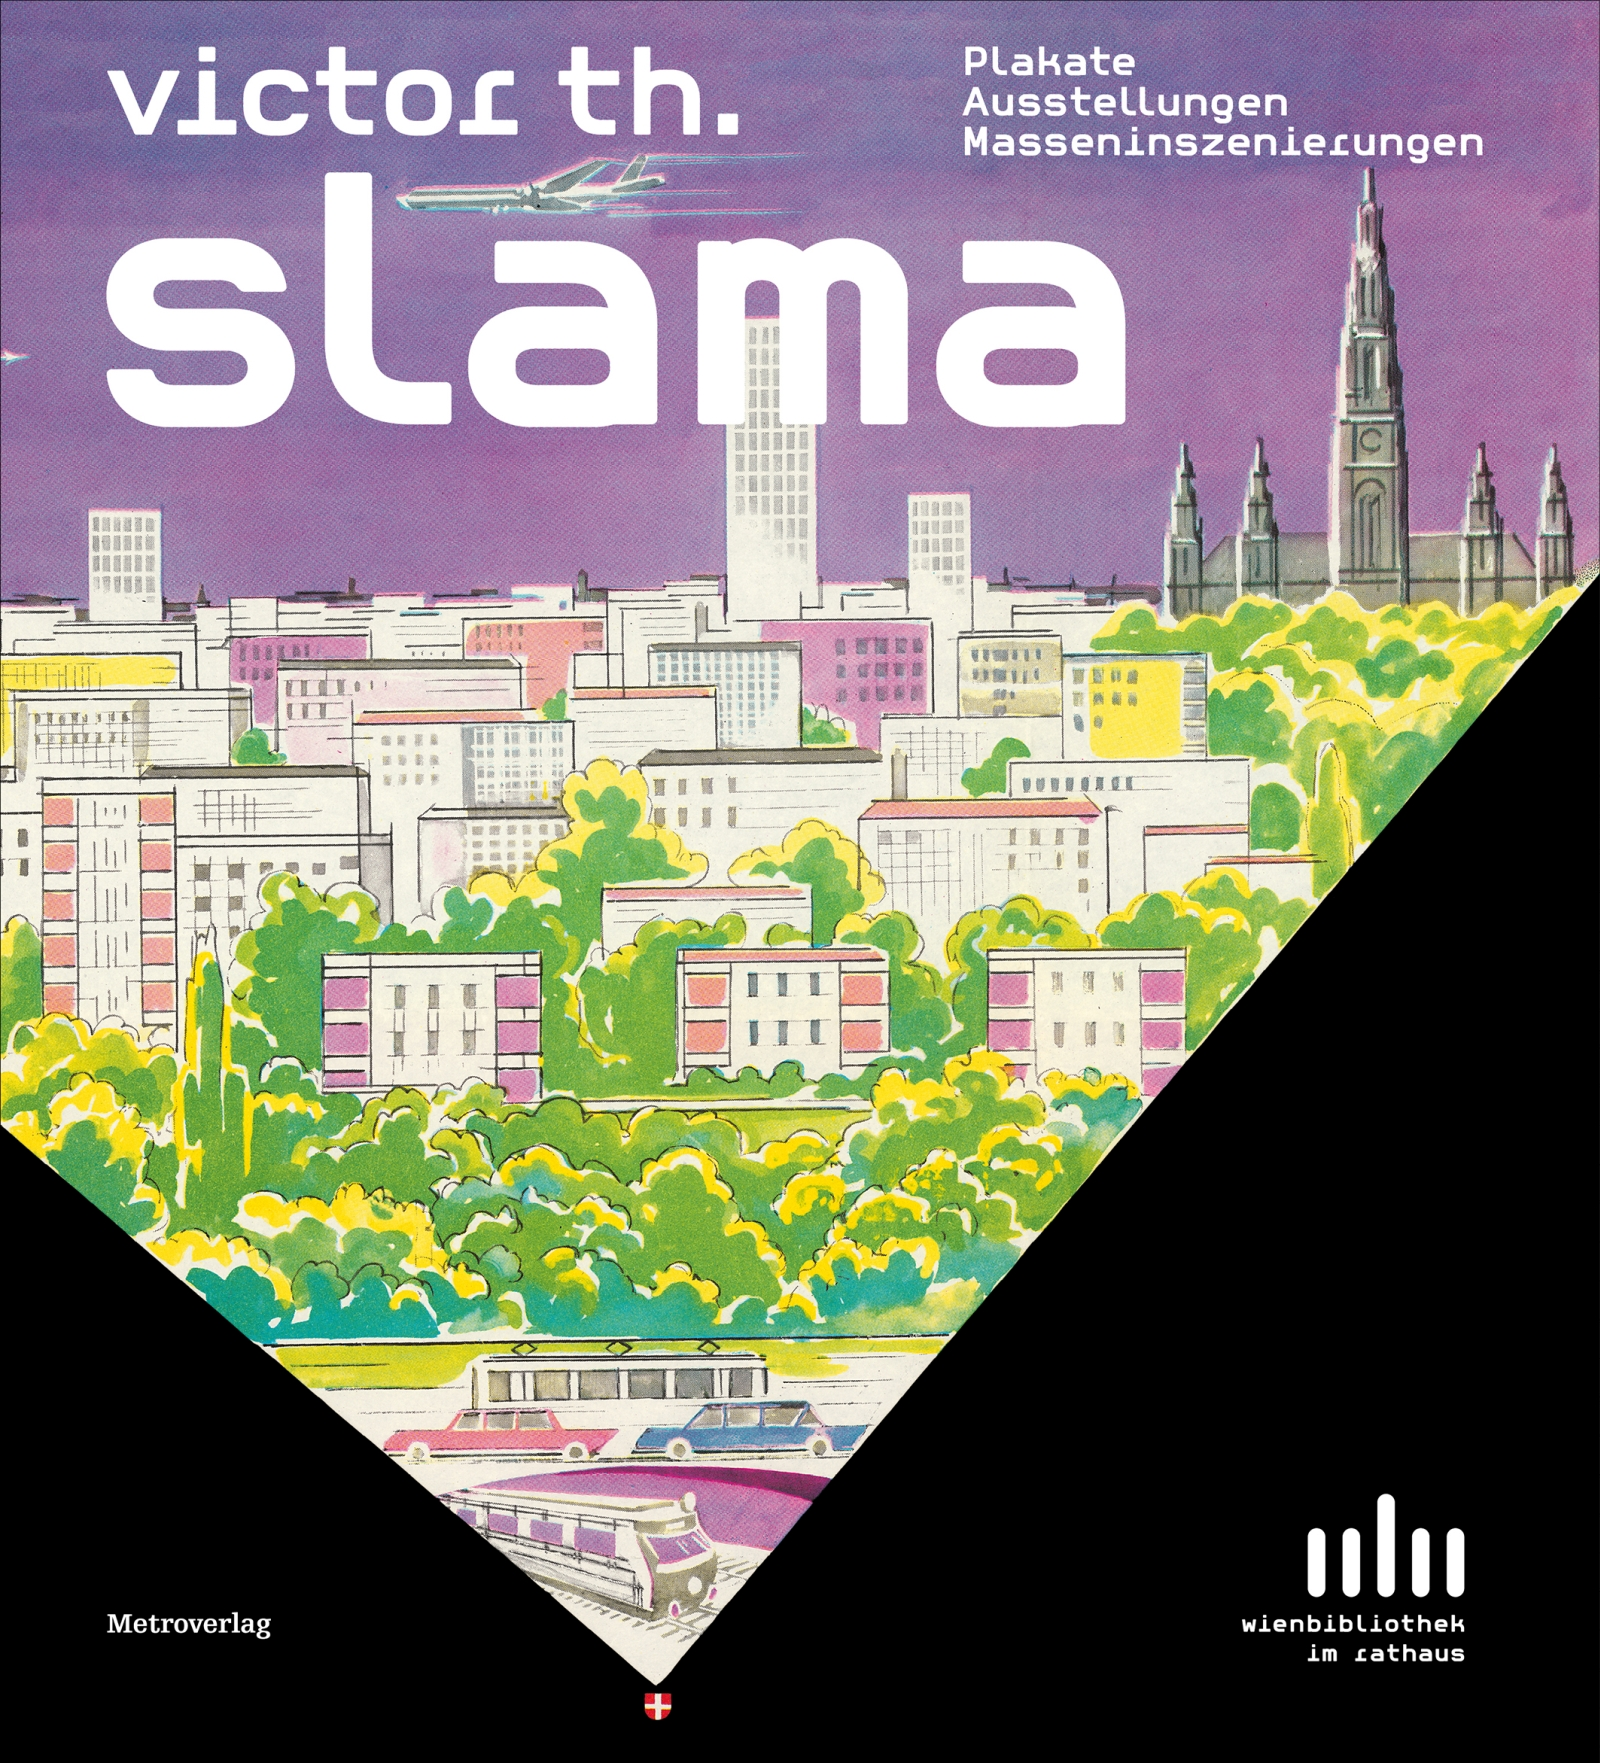 VICTOR TH. SLAMA – Plakate, Ausstellungen, Masseninszenierungen * 25. April bis 25. Oktober